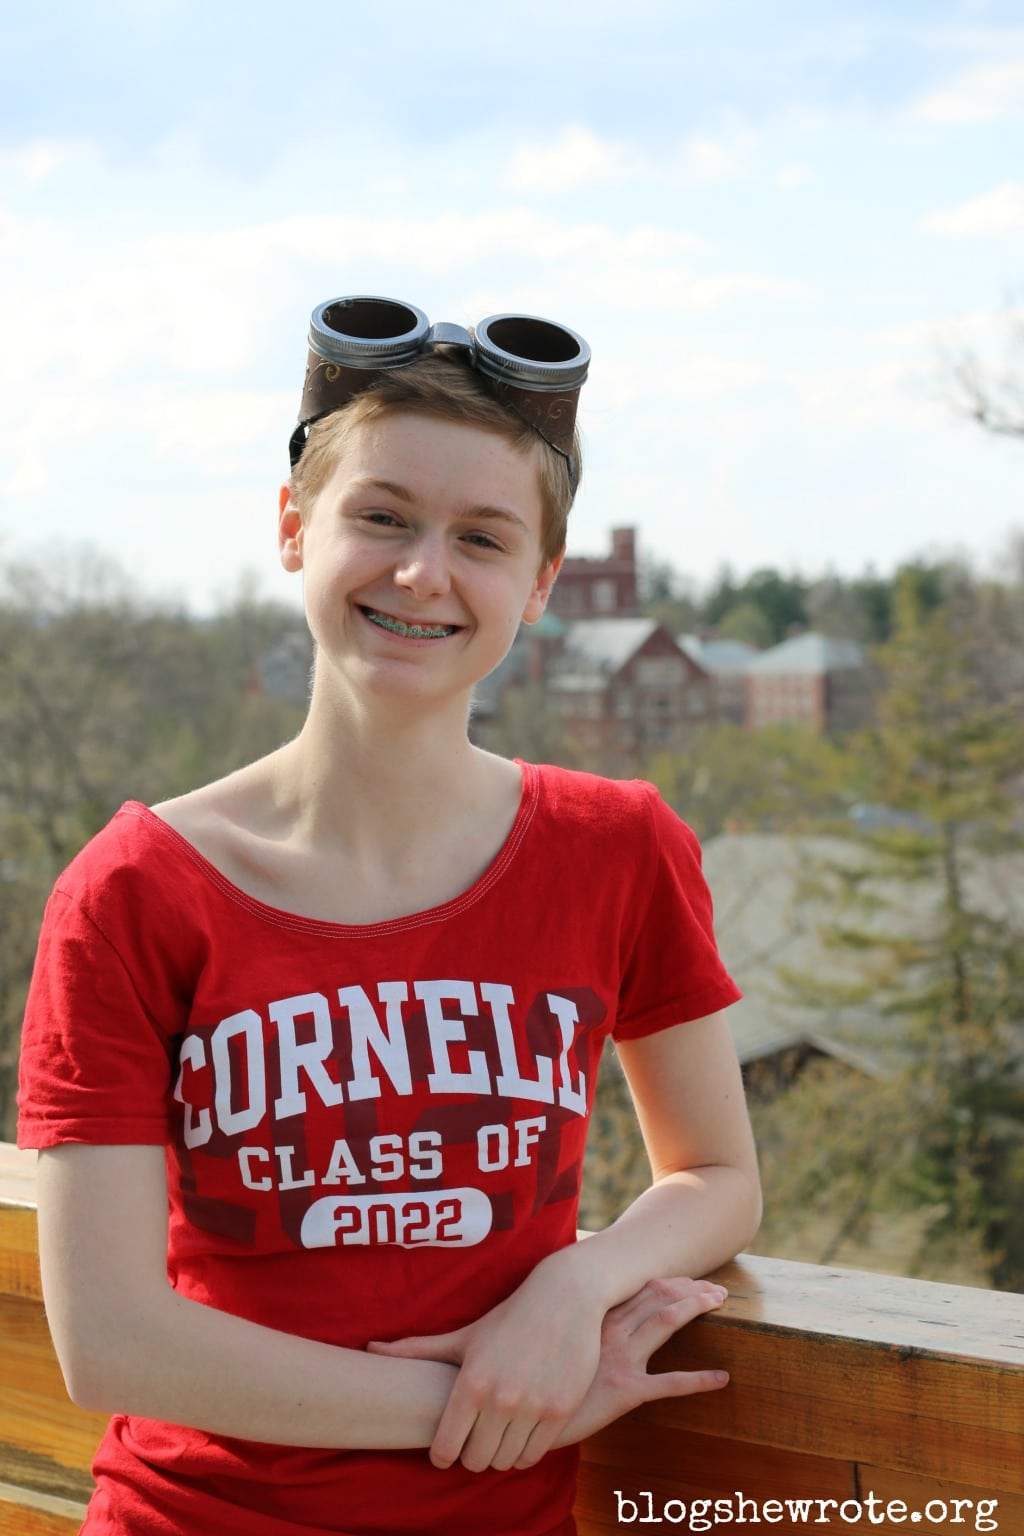 Homeschooling for College by Design at BlogSheWrote.org Newly accepted freshman at Cornell wearing a tshirt class of 2022